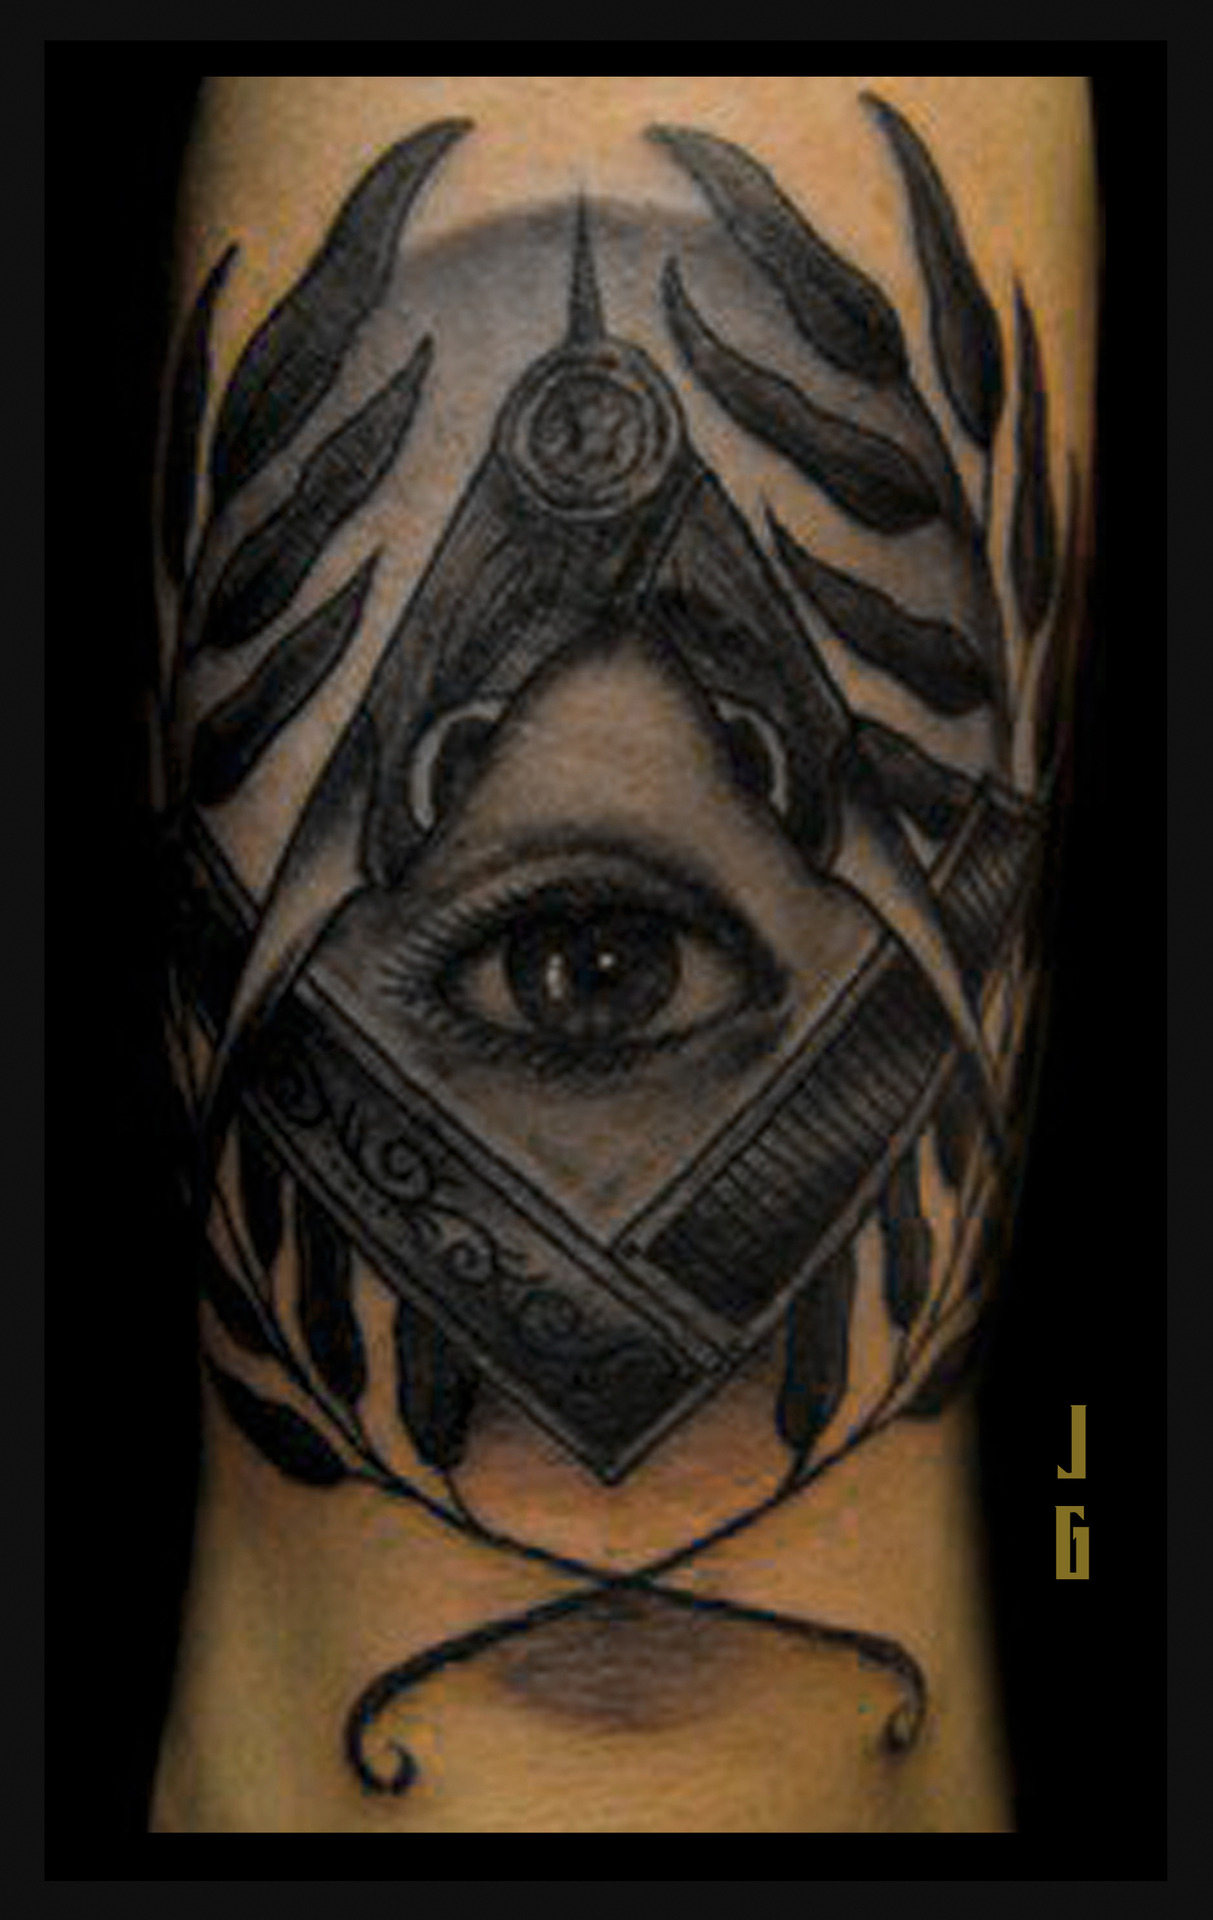 Illuminati Tattoos Designs Dark ink illuminati eye tattoo